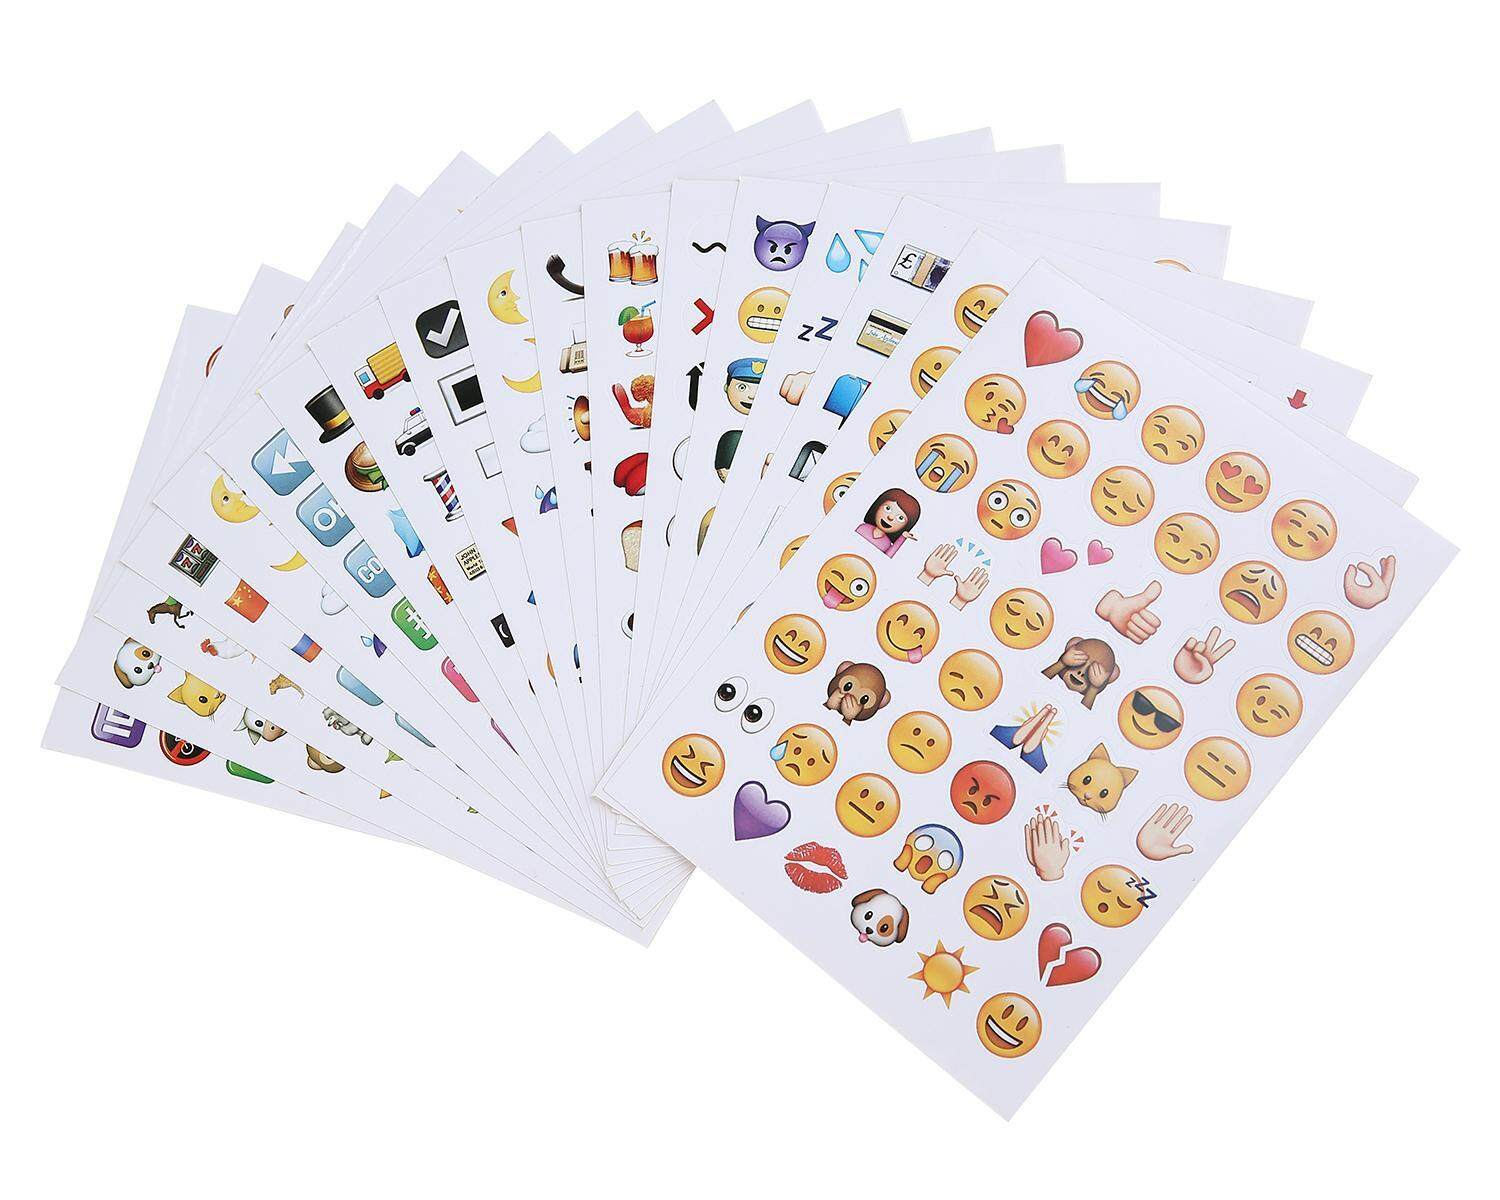 LingTud Emoji Stickers 19 Sheets 912 With Happy Faces Kid Stickers For Phone Facebook Twitter - intl